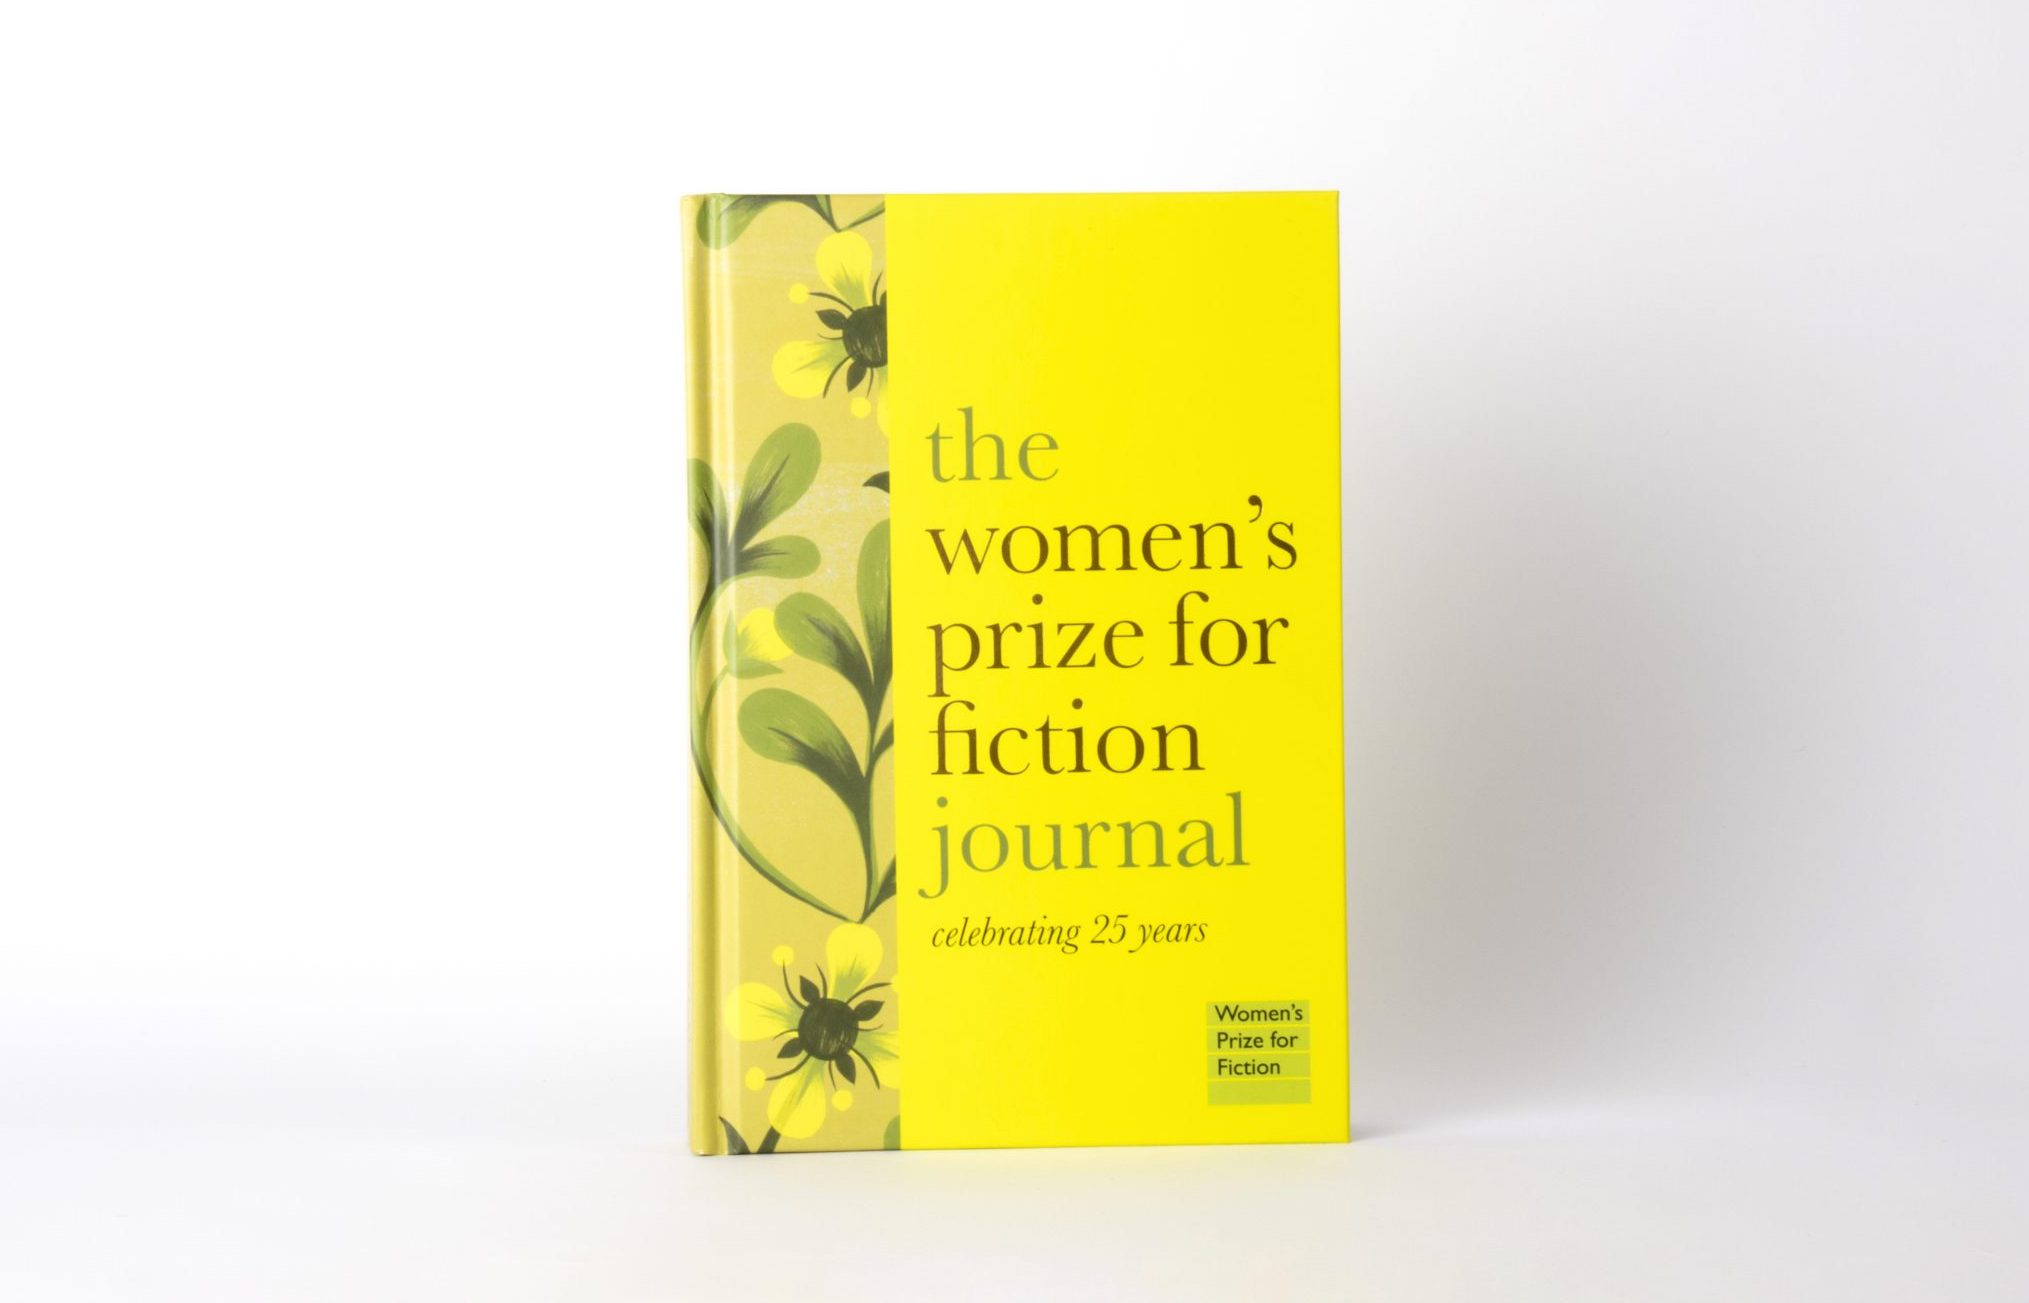 Picture of The Women's Prize for Fiction journal